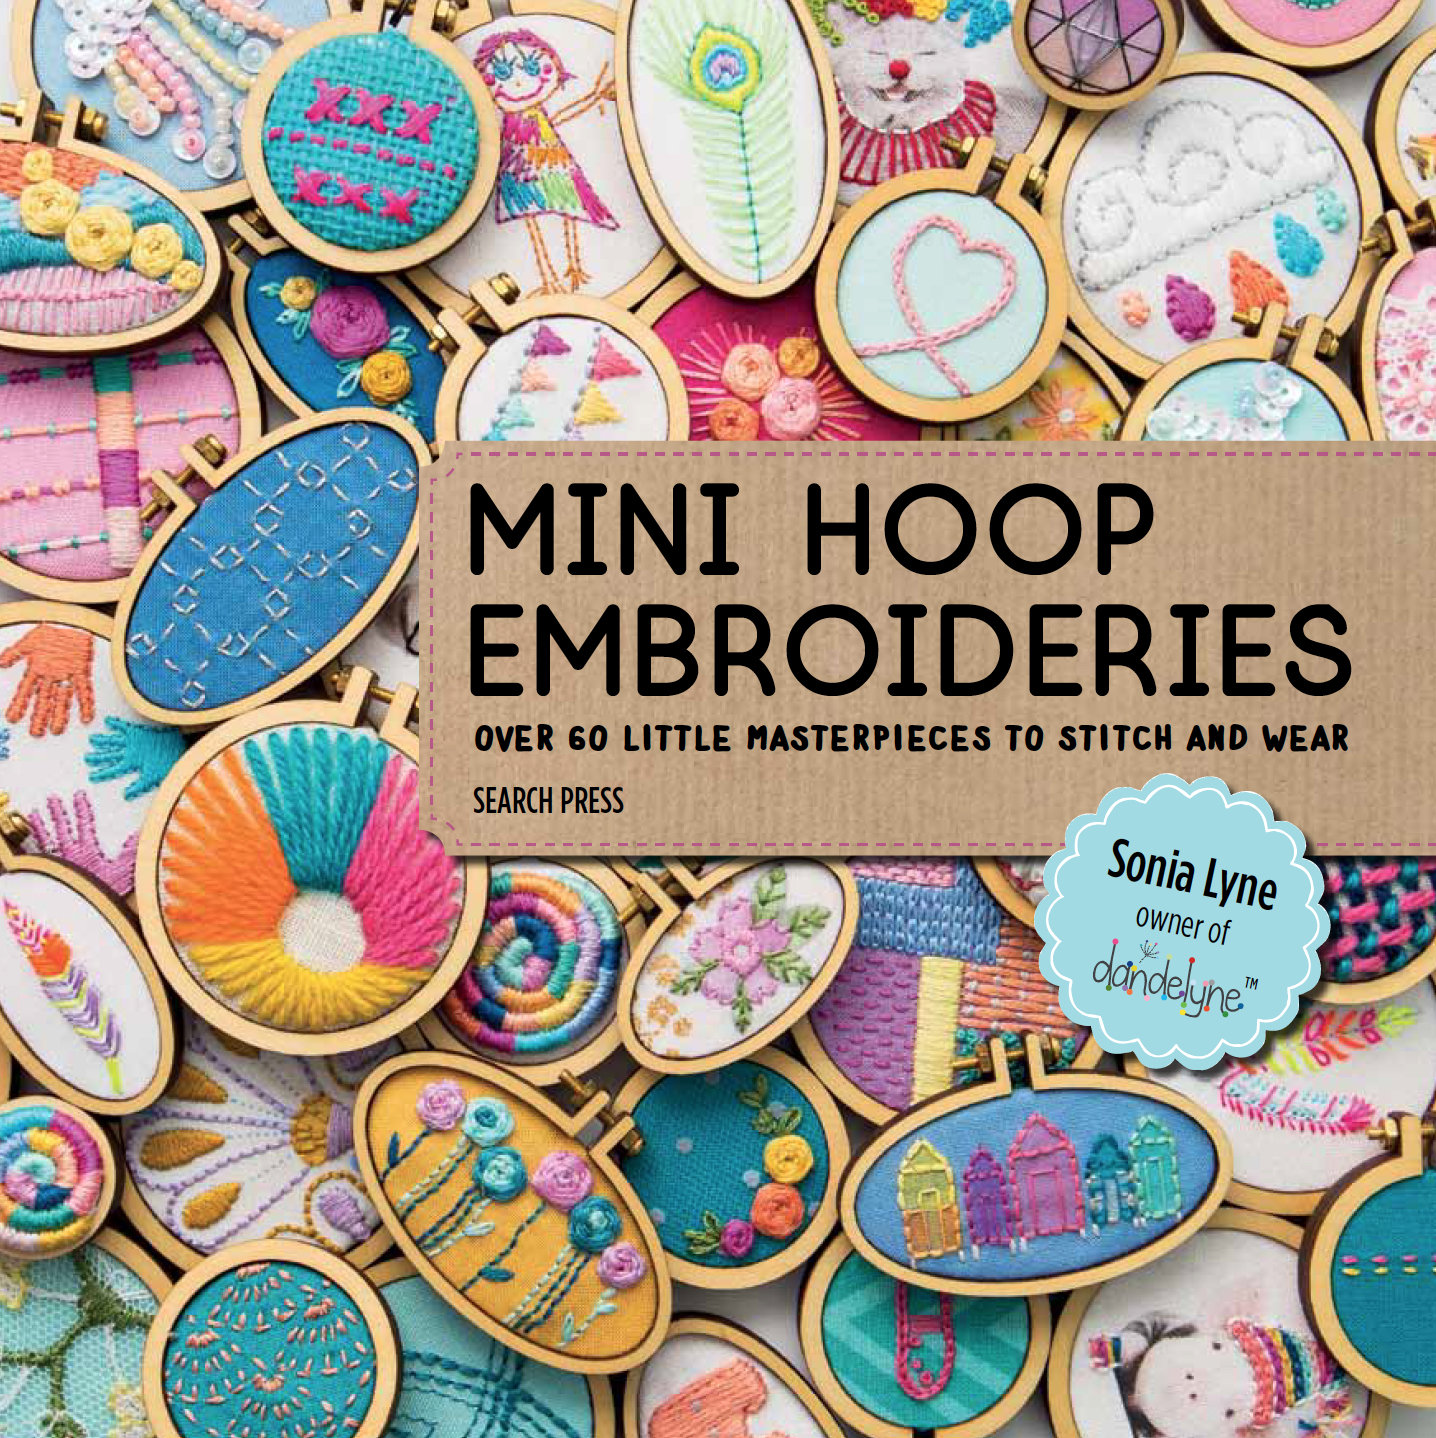 Mini Hoop Embroideries Book by Sonia Lyne of Dandelyne